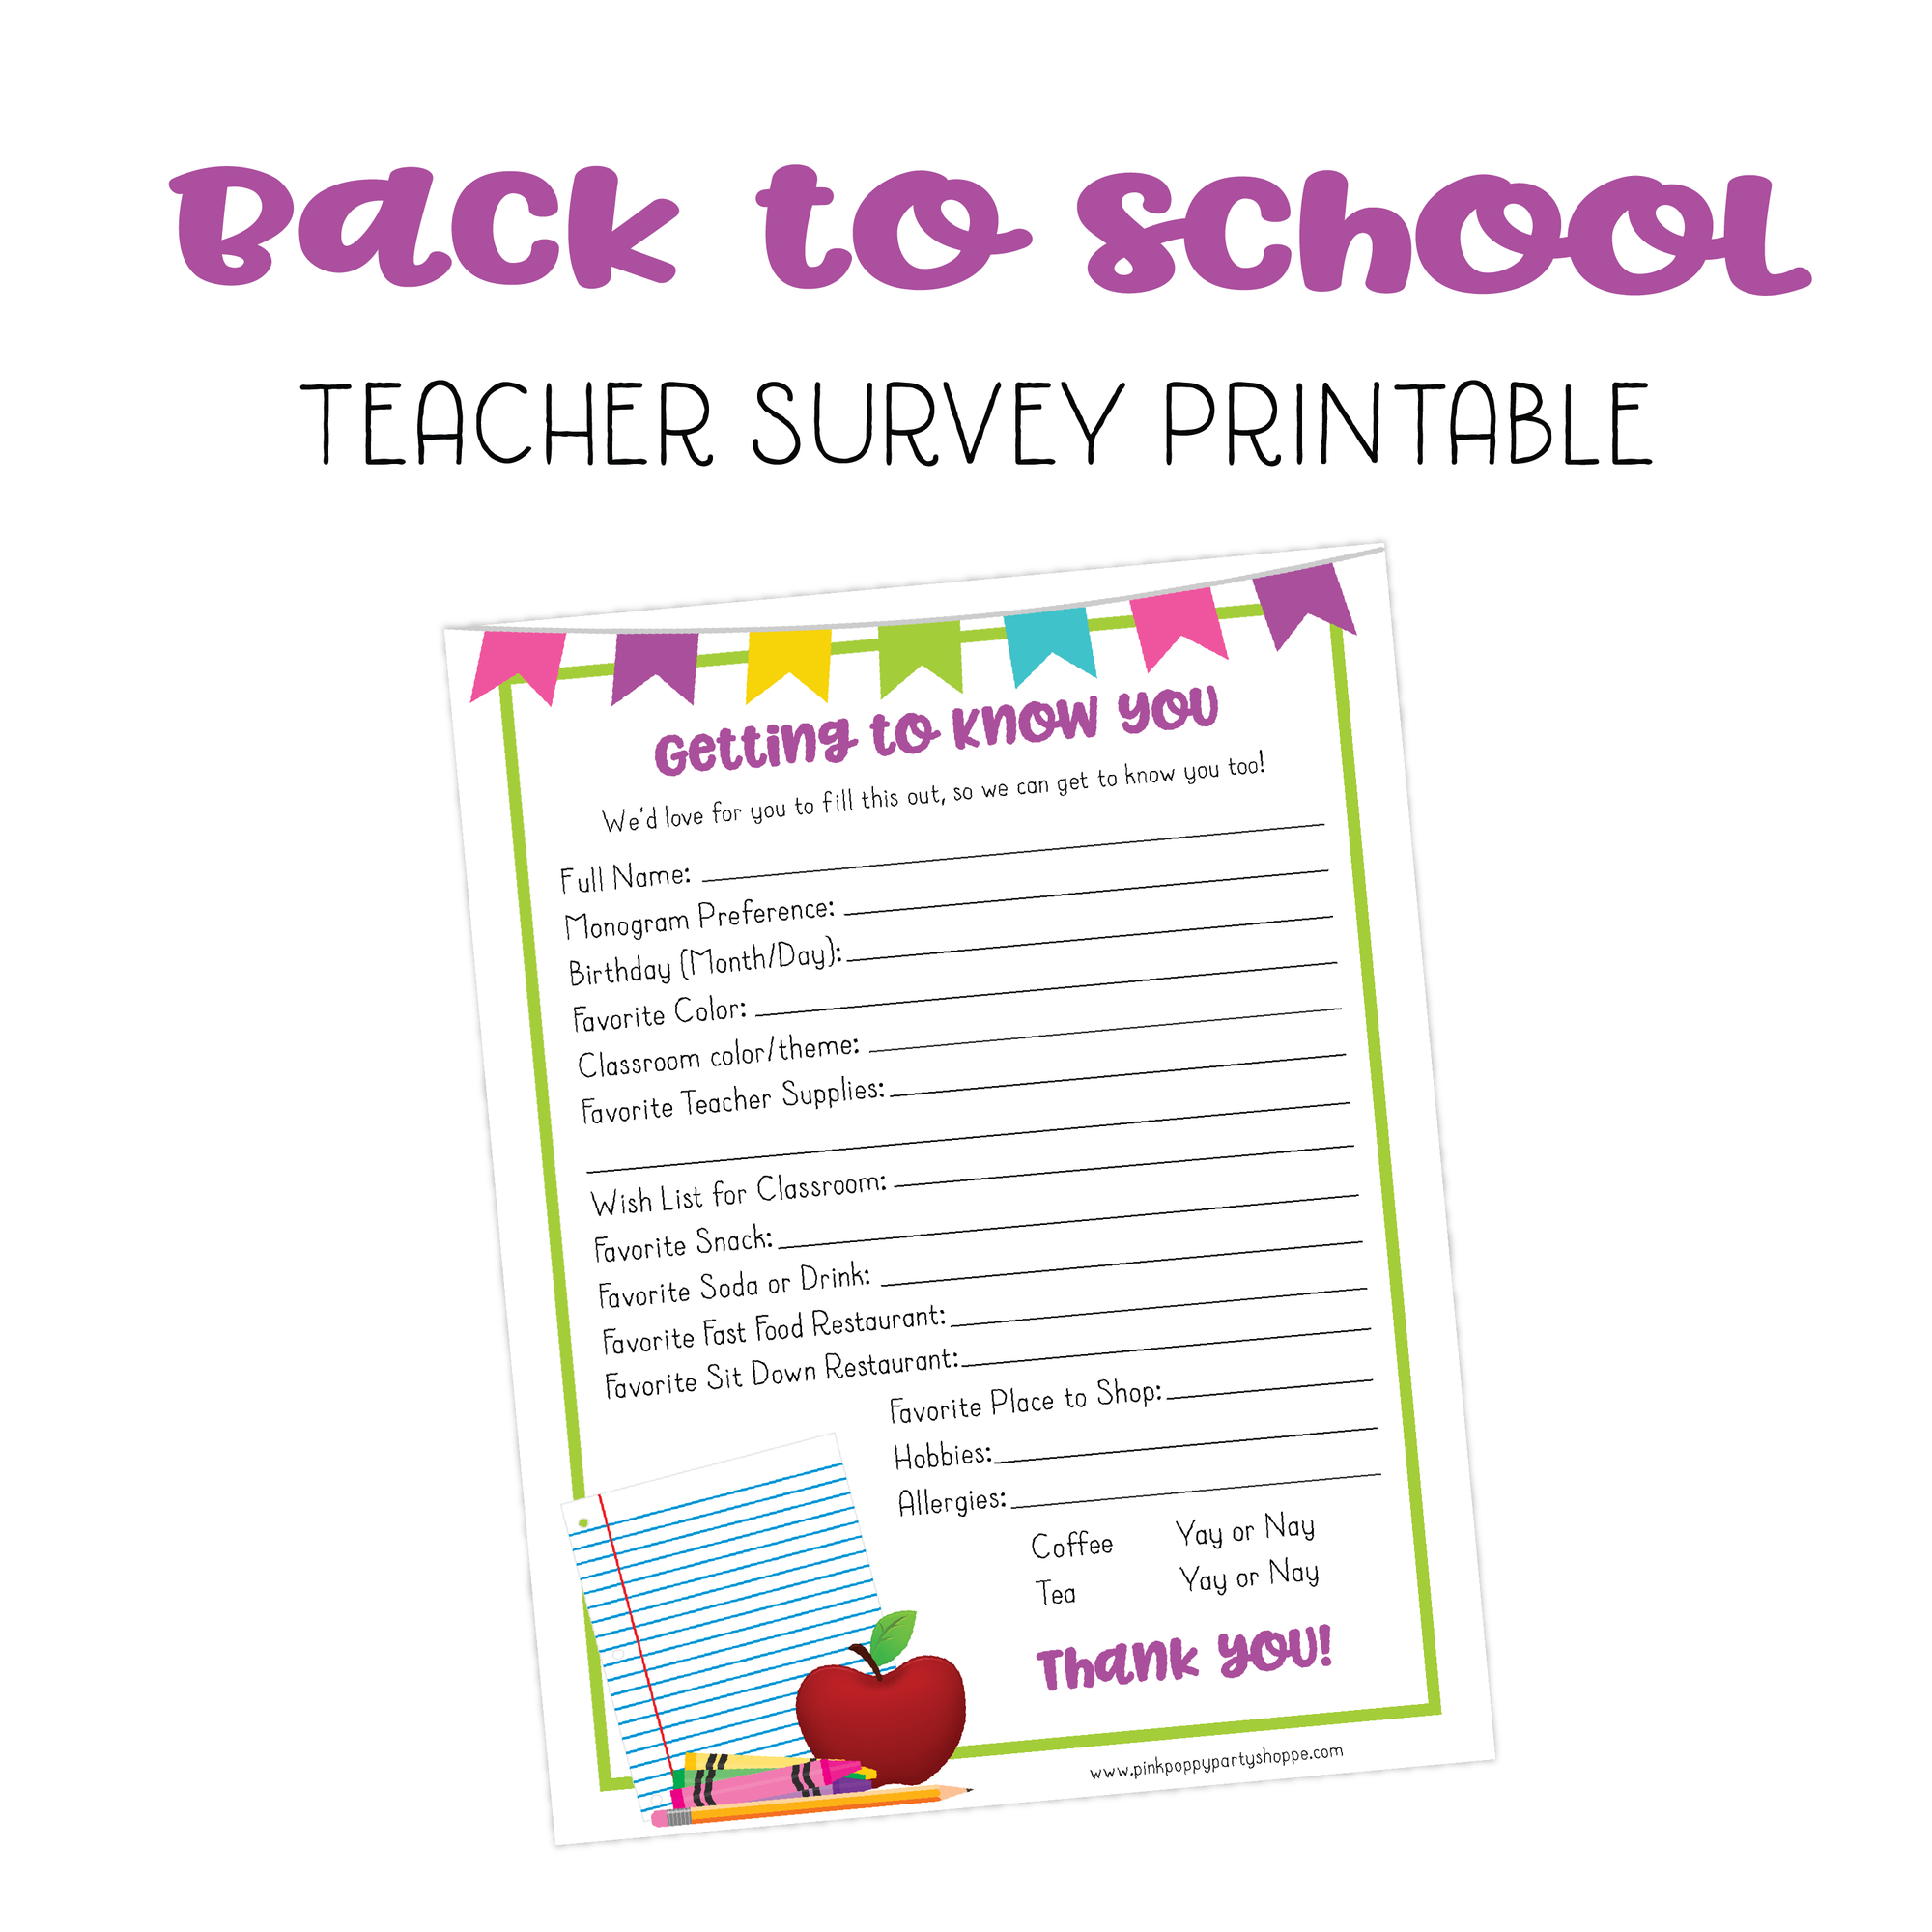 Back to School Teacher Survey Free Printable by Pink Poppy Party Shoppe